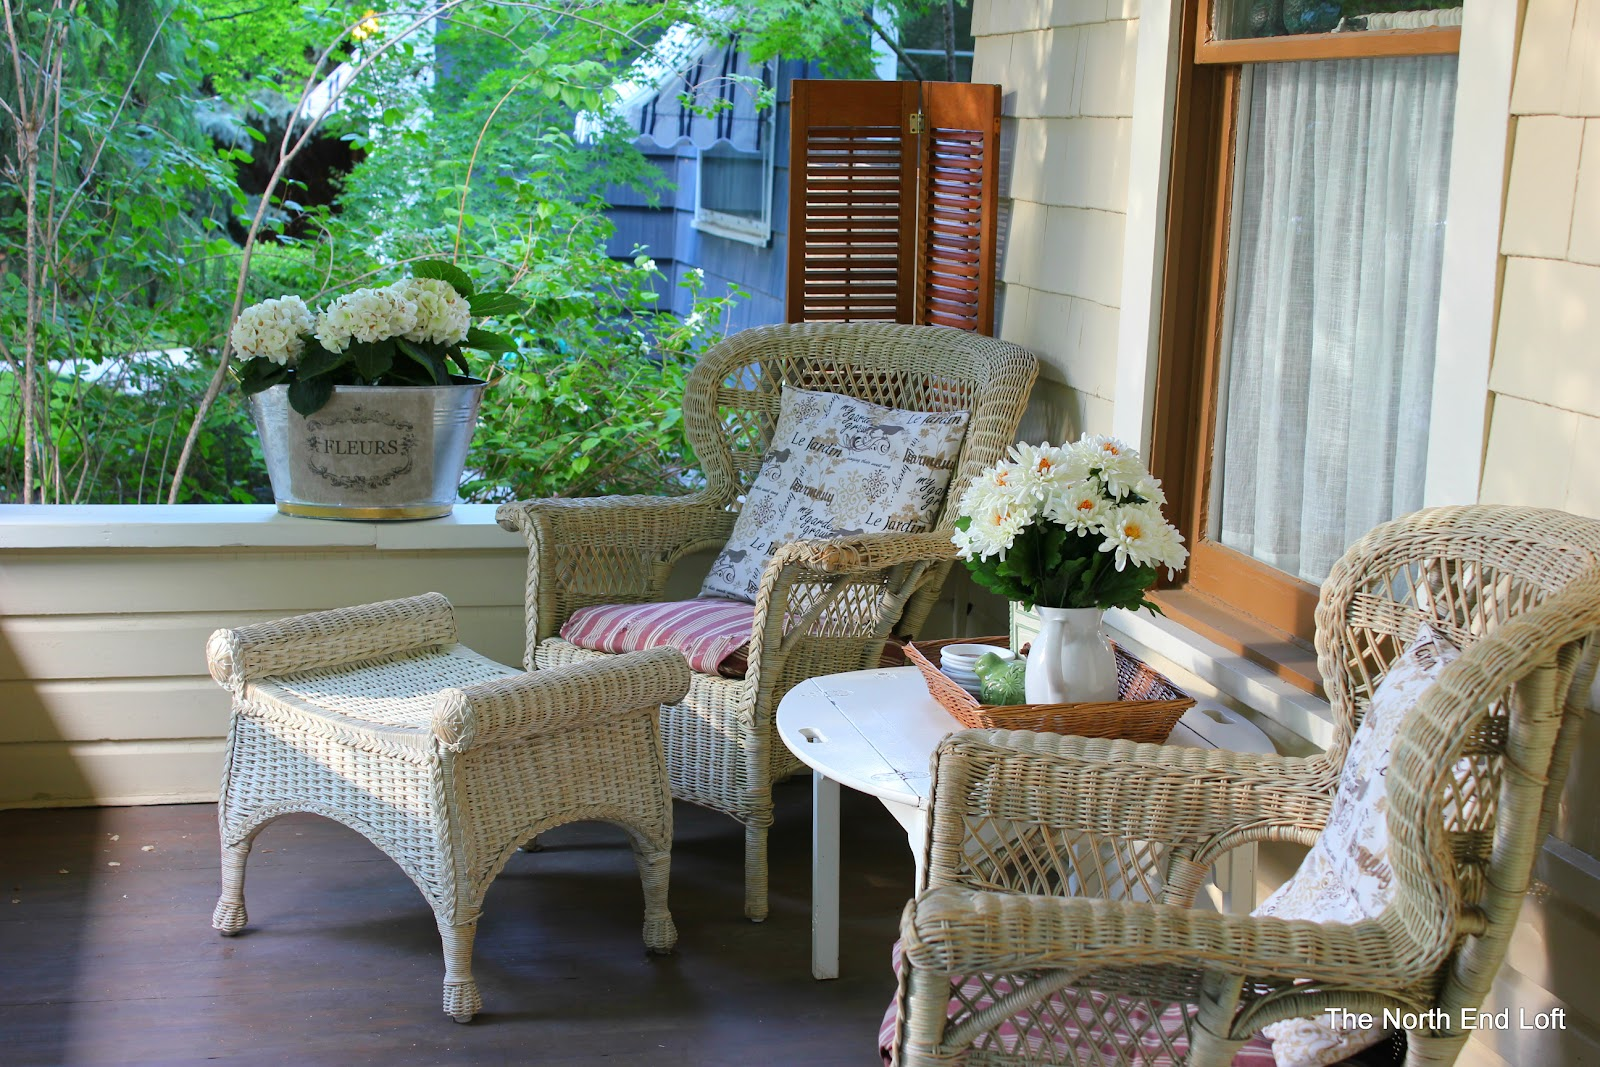 The North End Loft: My Front Porch